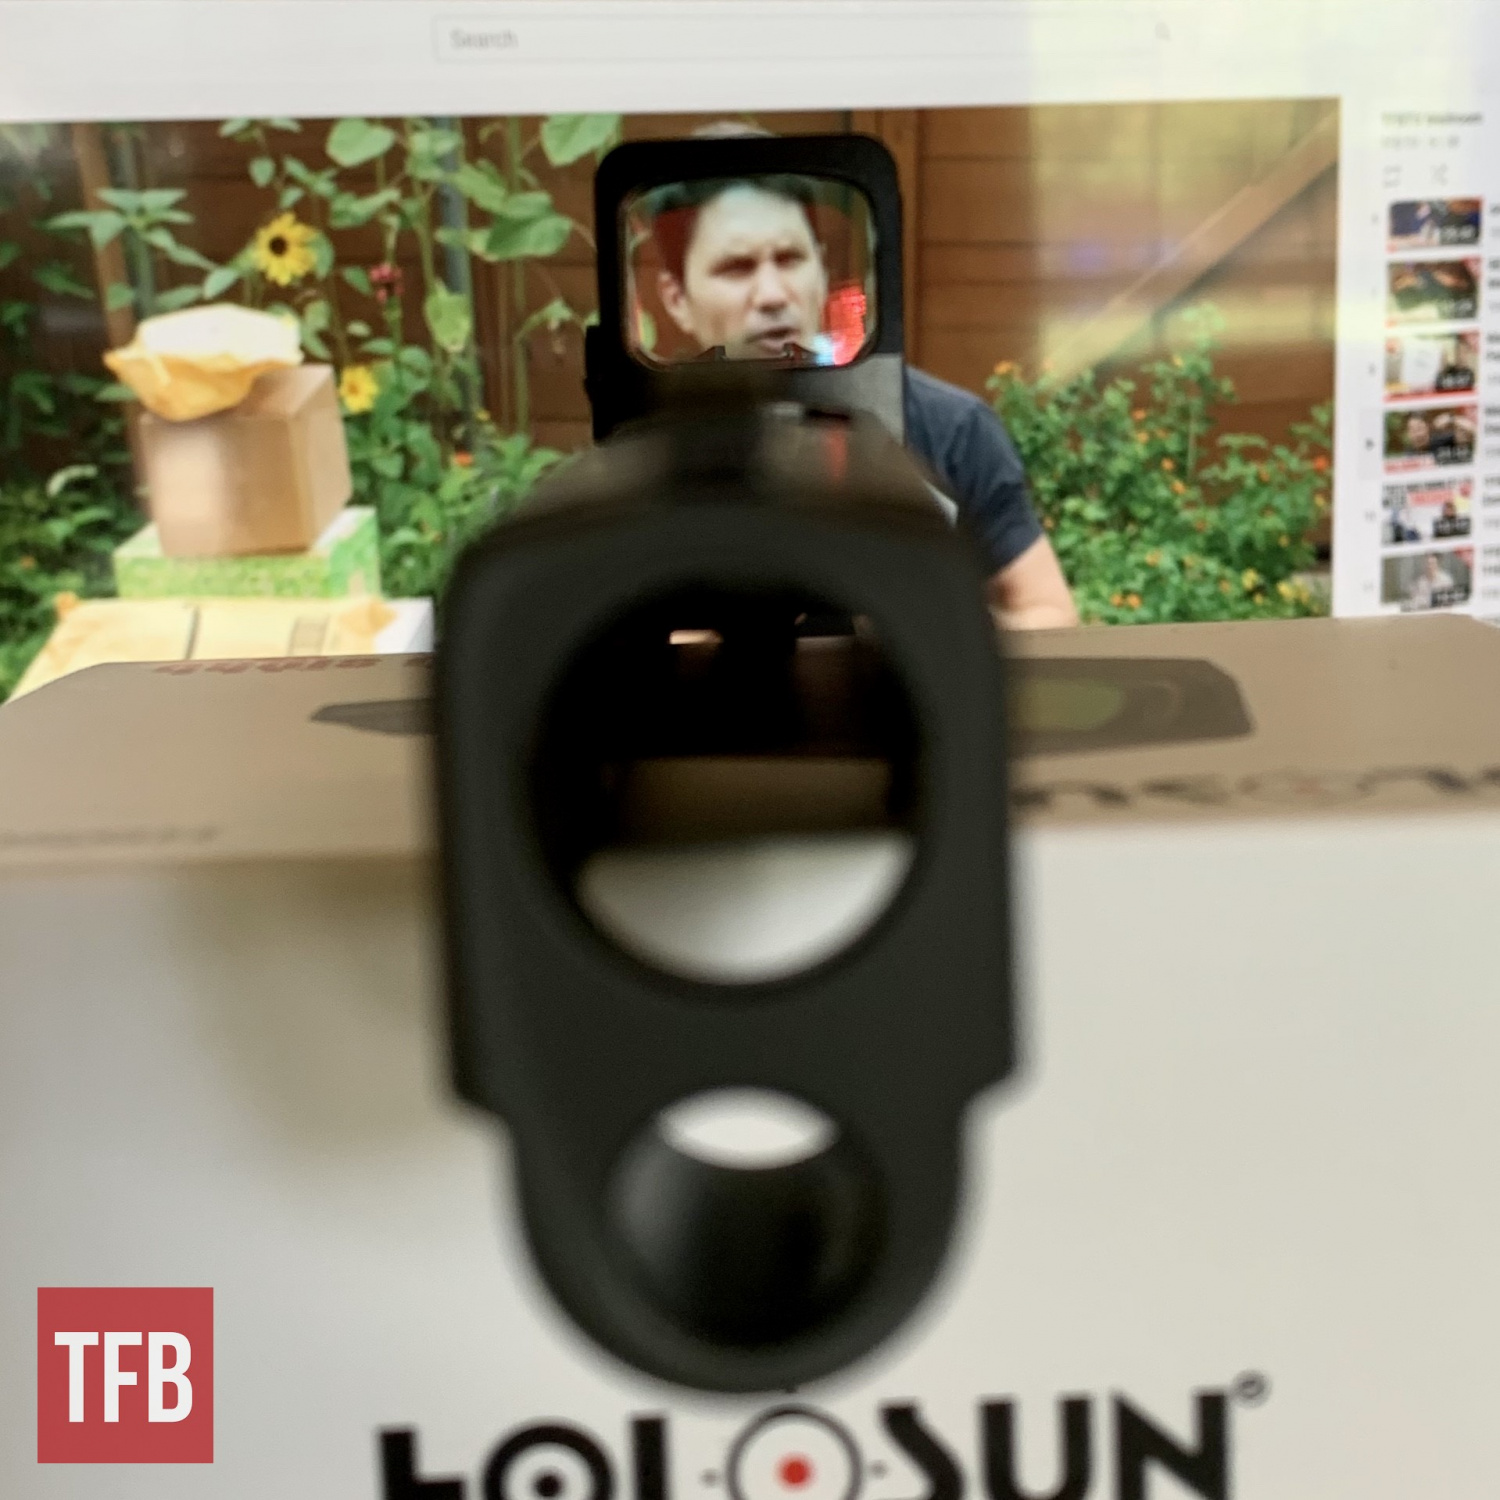 TFB TV's James Reeves silently judges you through the 507K's multilayer coated glass.